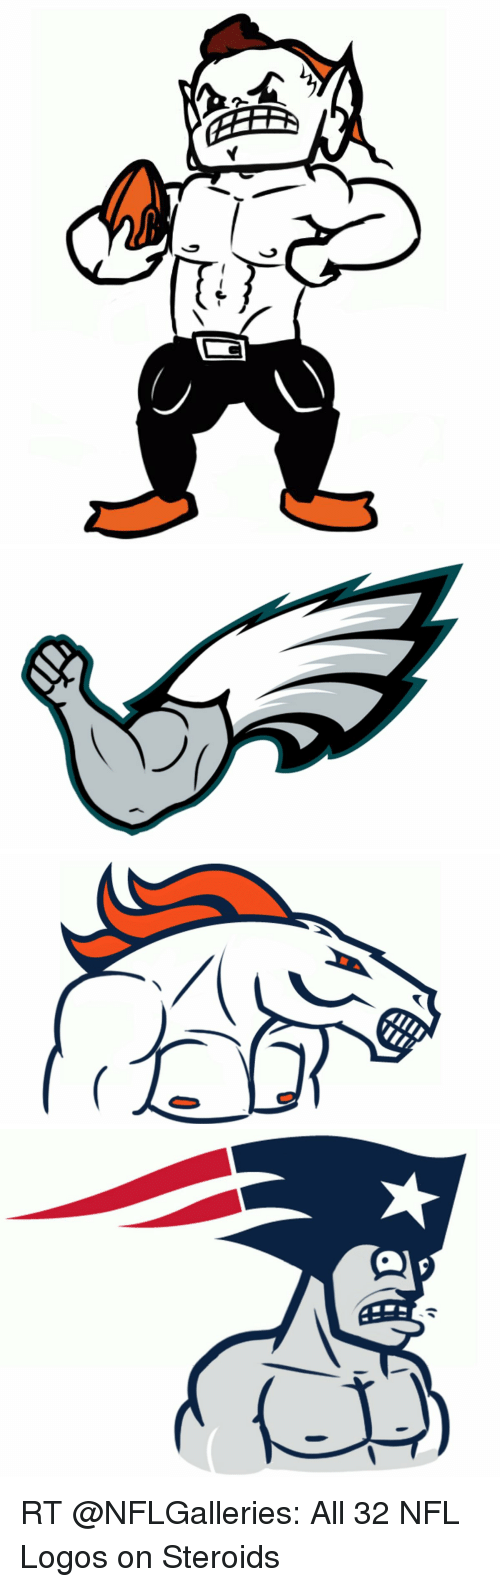 Nfl logos on steroids i feel great on steroids